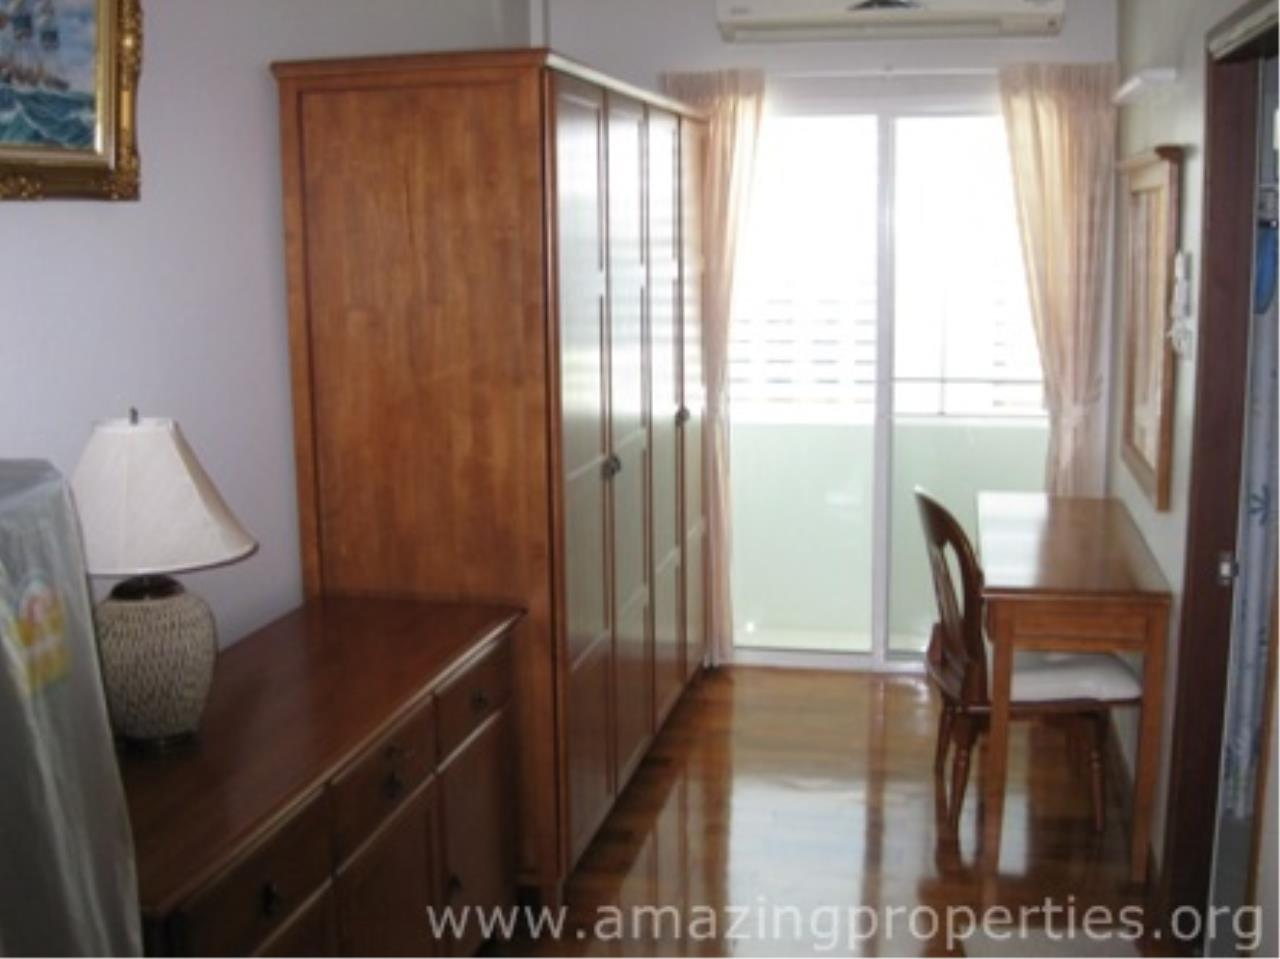 Amazing Properties Agency's 2 bedrooms Town House for rent 10